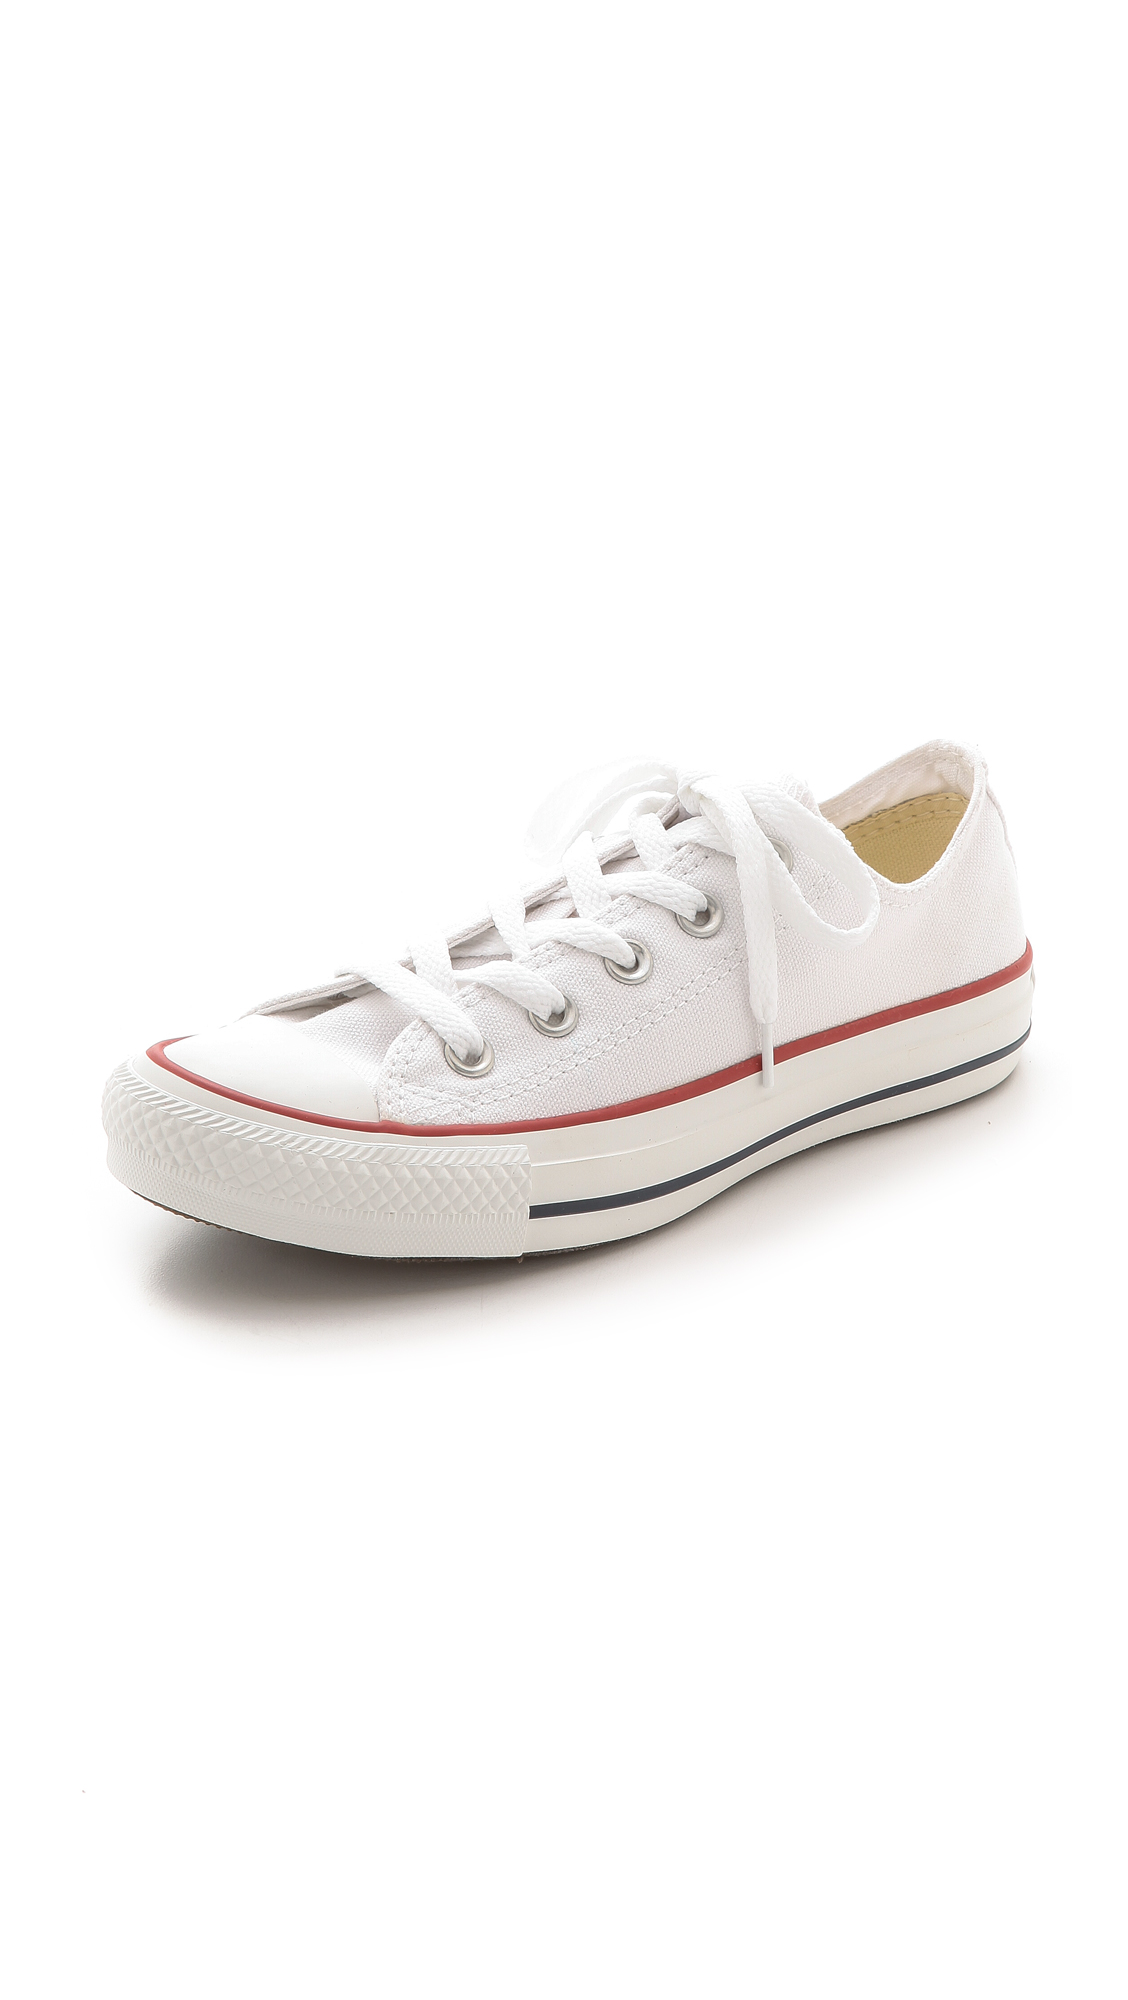 e1a9cf225a8 ... All Star Ox Casual Sneakers From Finish Line In Optical White. CONVERSE